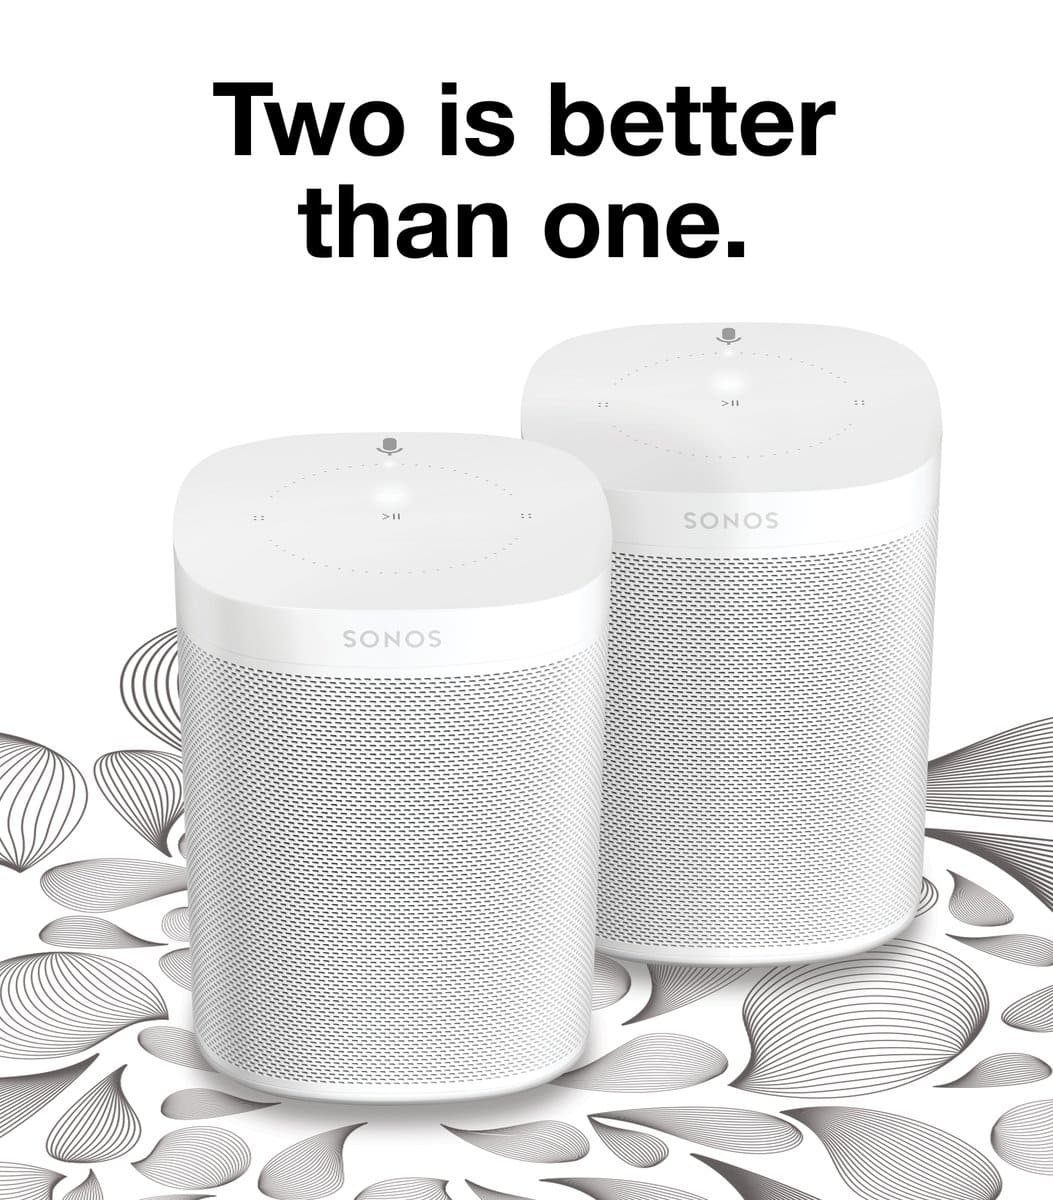 Limited Time Offer: TWO (2) Sonos Ones With Integrated Alexa For $349 Starting 1/26/18